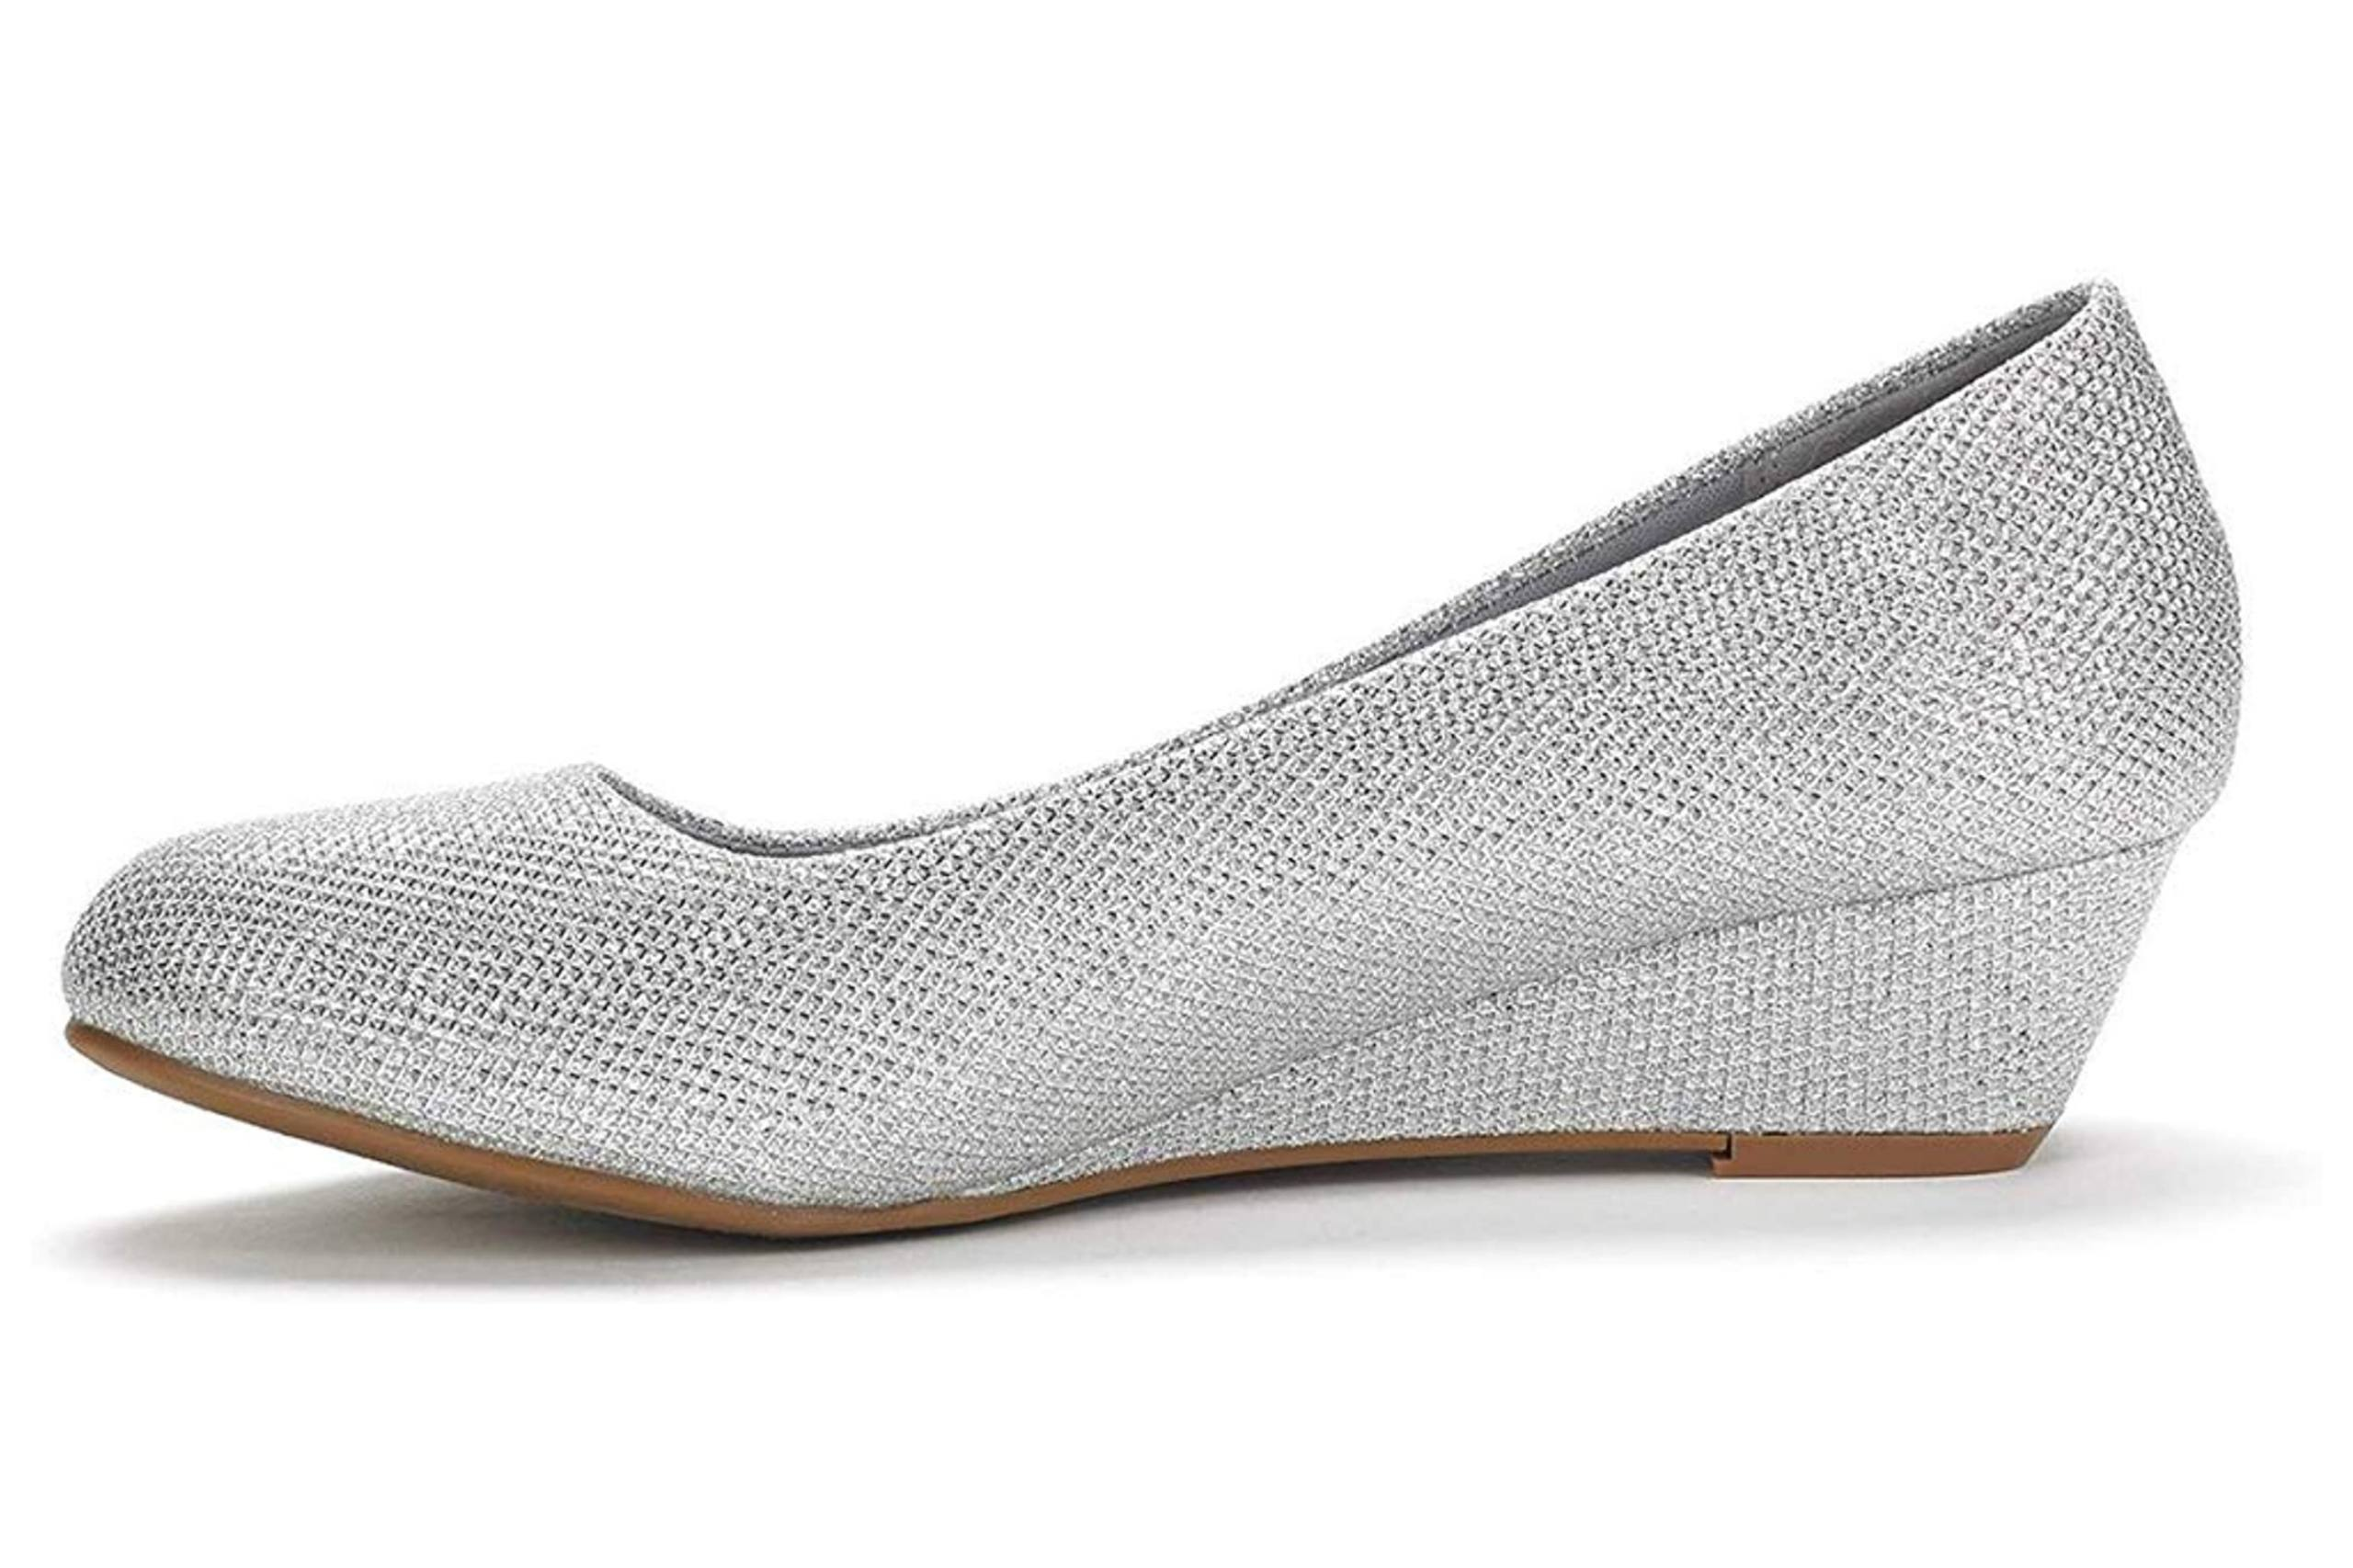 Best low heel shoes for wedding with closed toe